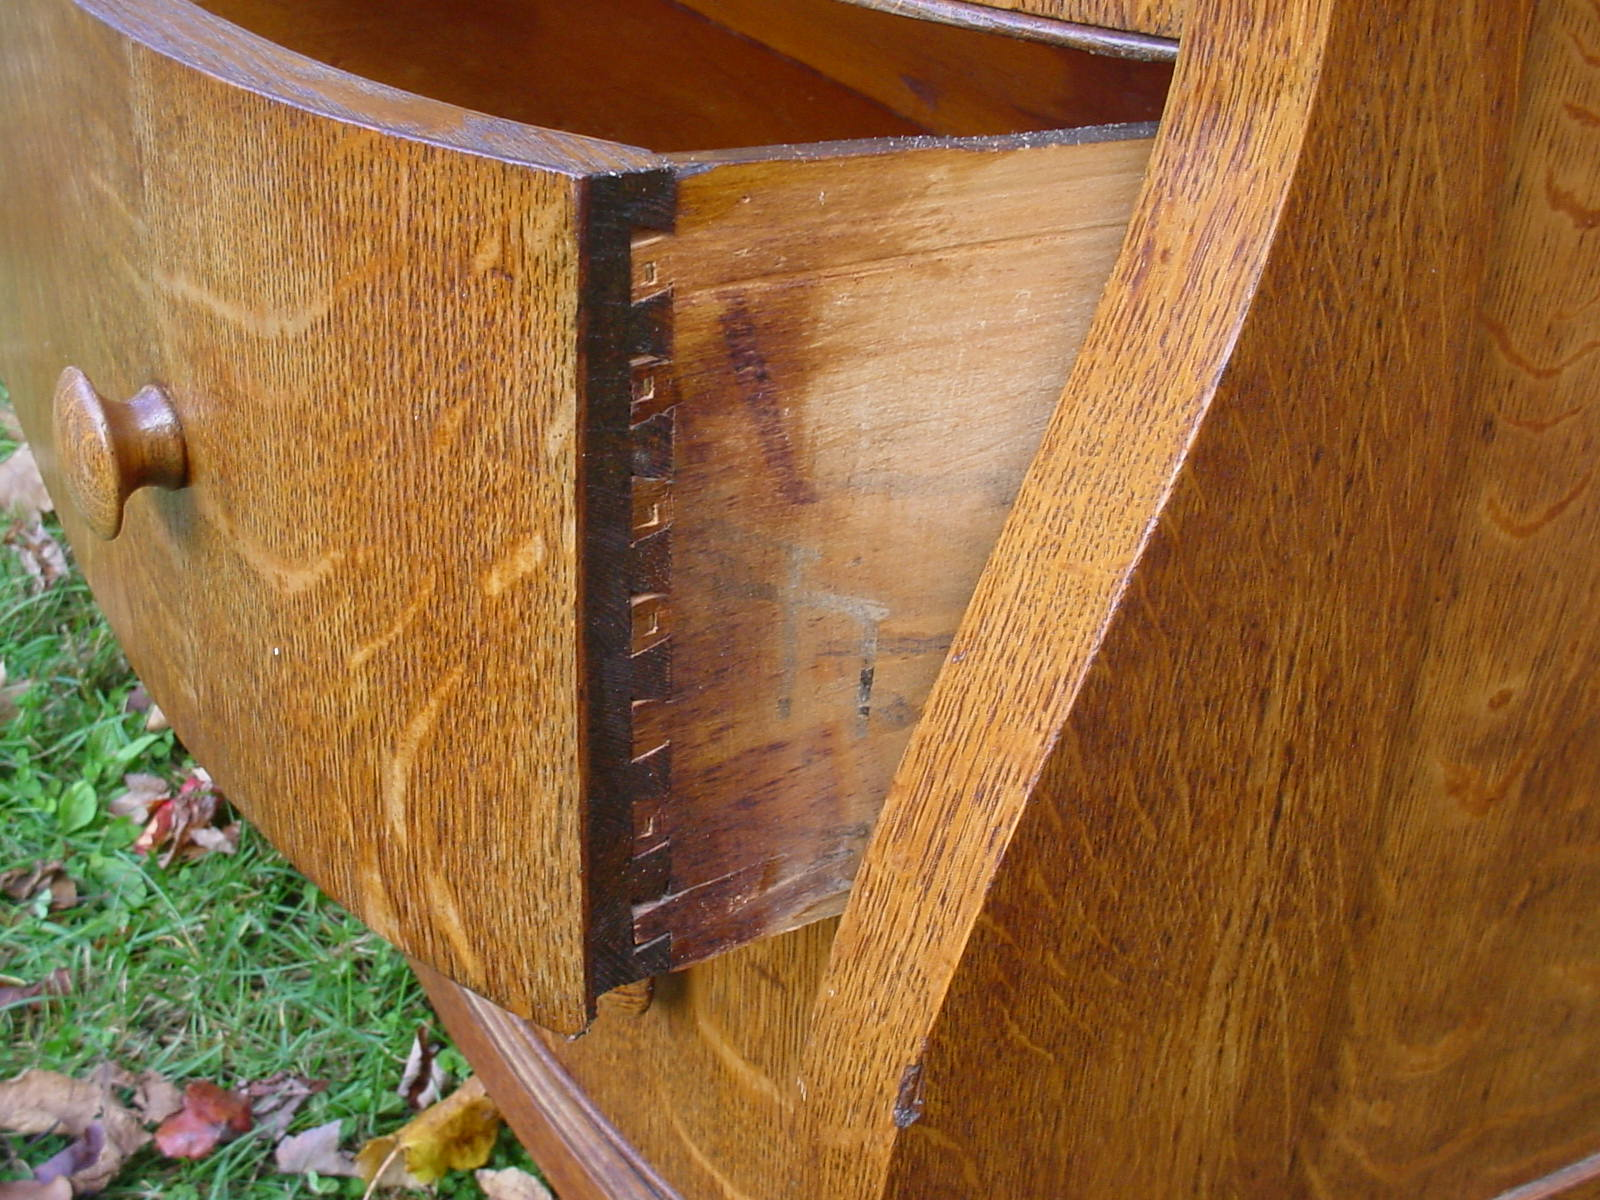 Dovetail joint in antique furniture. Image source